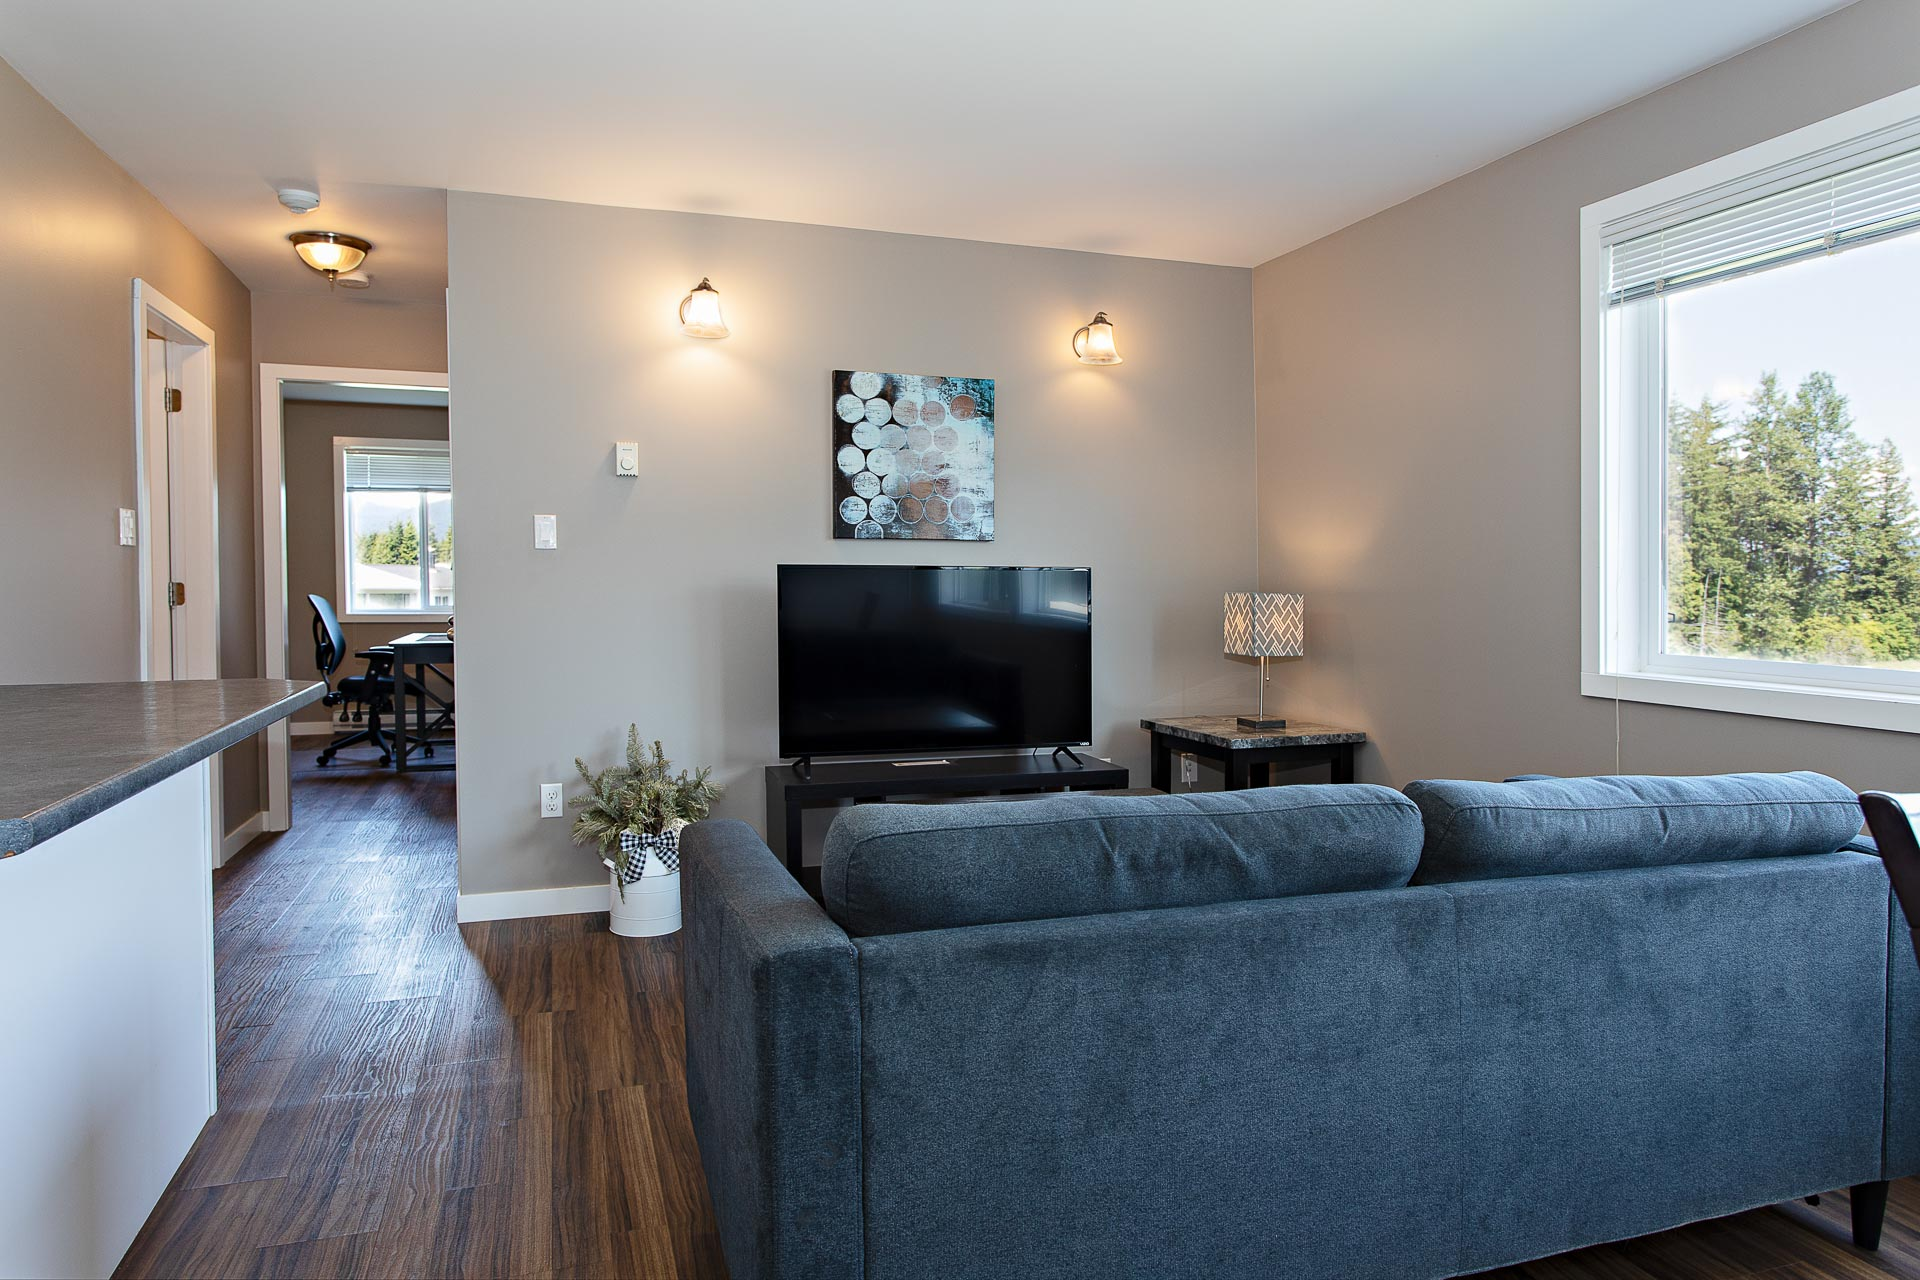 Furnished living room at Hillcrest Place Apartments in Kitimat, B.C.